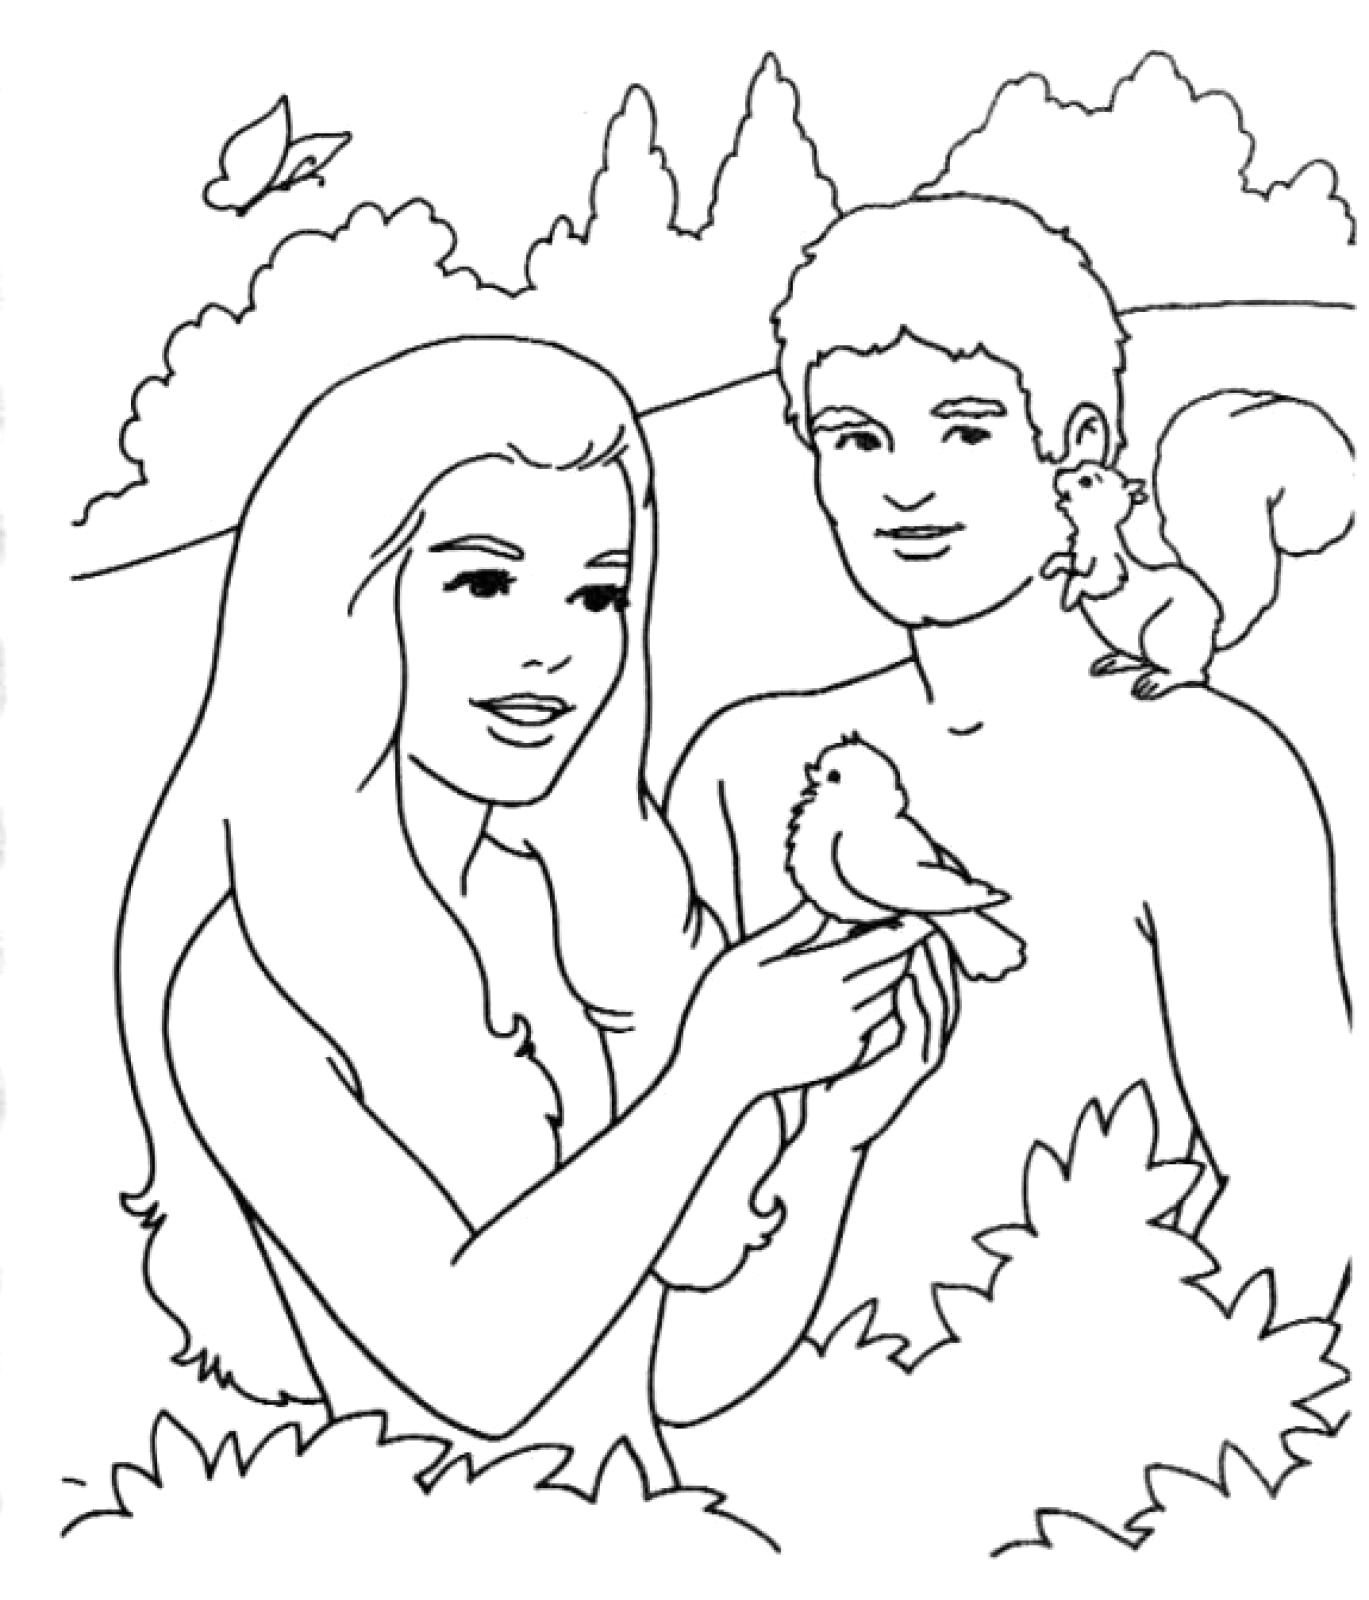 Free Printable Adam and Eve Coloring Pages Free Printable Adam and Eve Coloring Pages for Kids Best